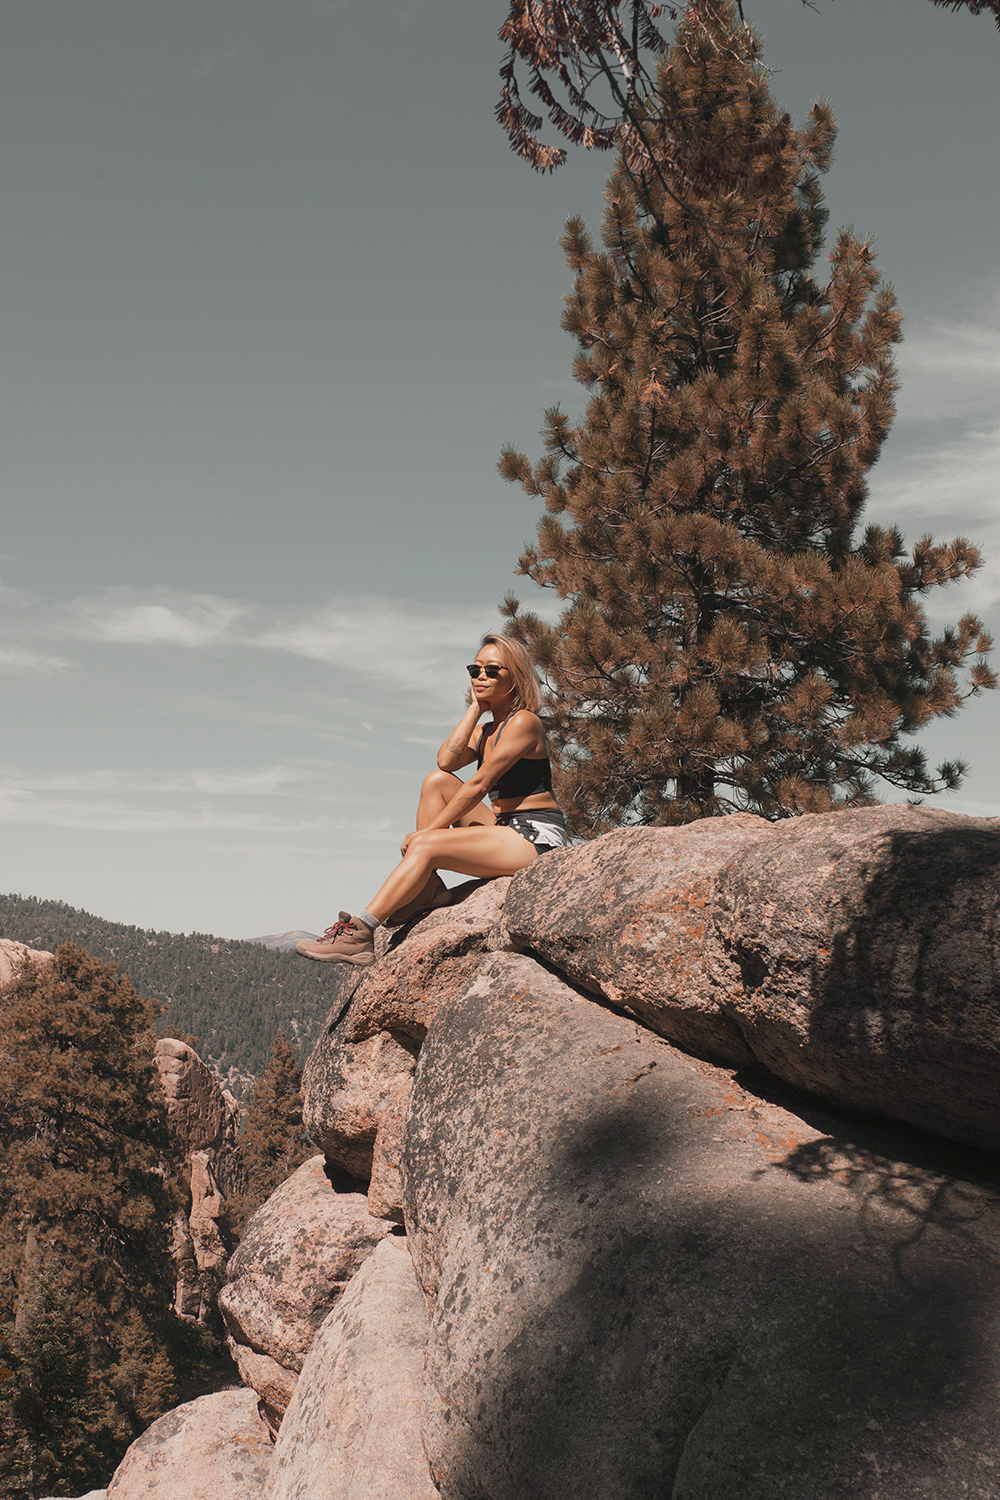 15getaway-bigbearlake-castlerock-outdoorvoices-hiking-travel